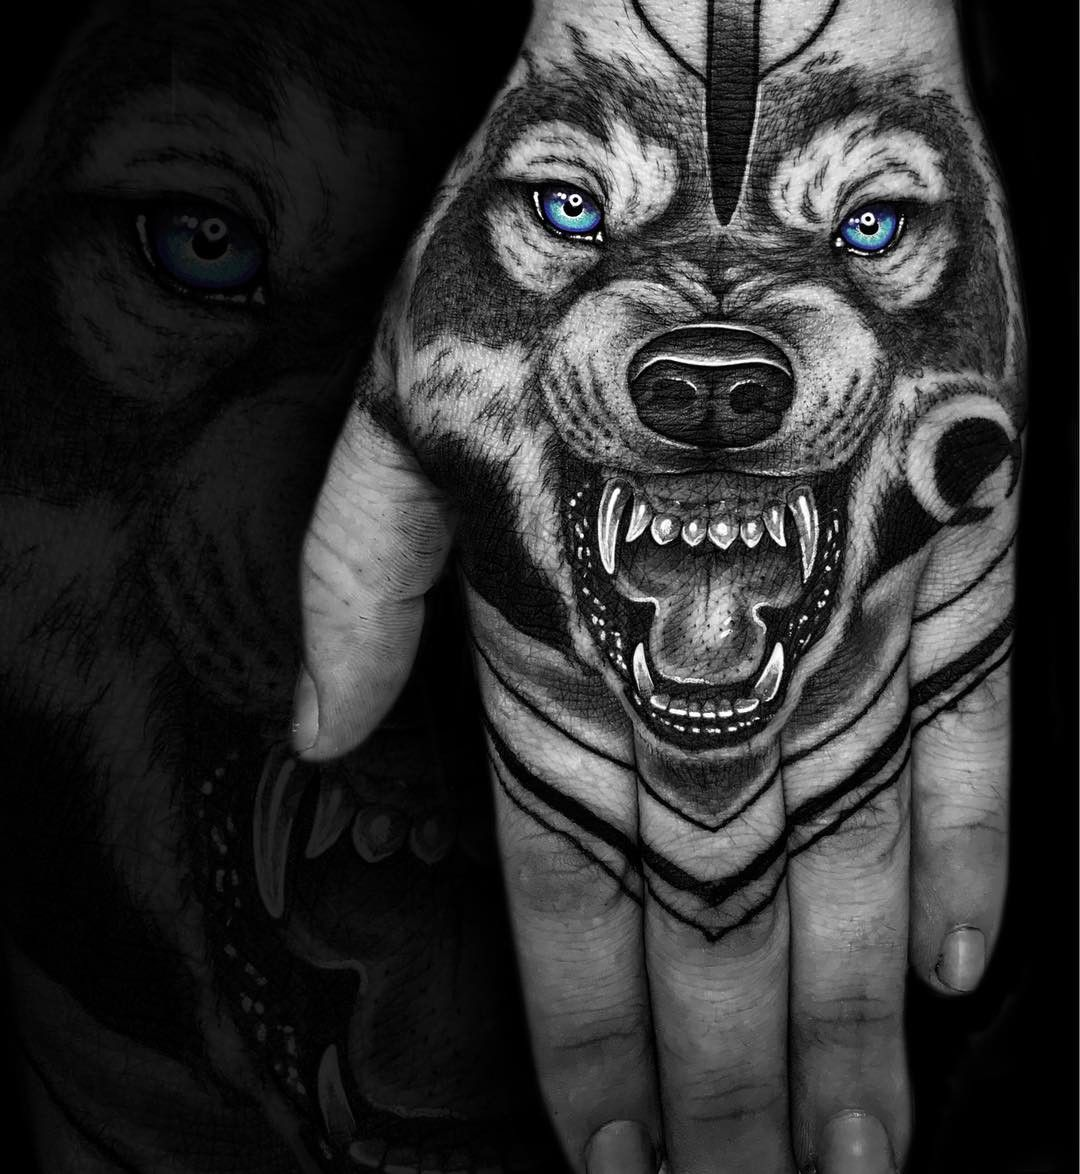 Cool Tattoo Ideas For Men And Women The Wild Tattoo Design Pictures 2019 Hand Tattoos For Guys Wolf Tattoos Hand Tattoos